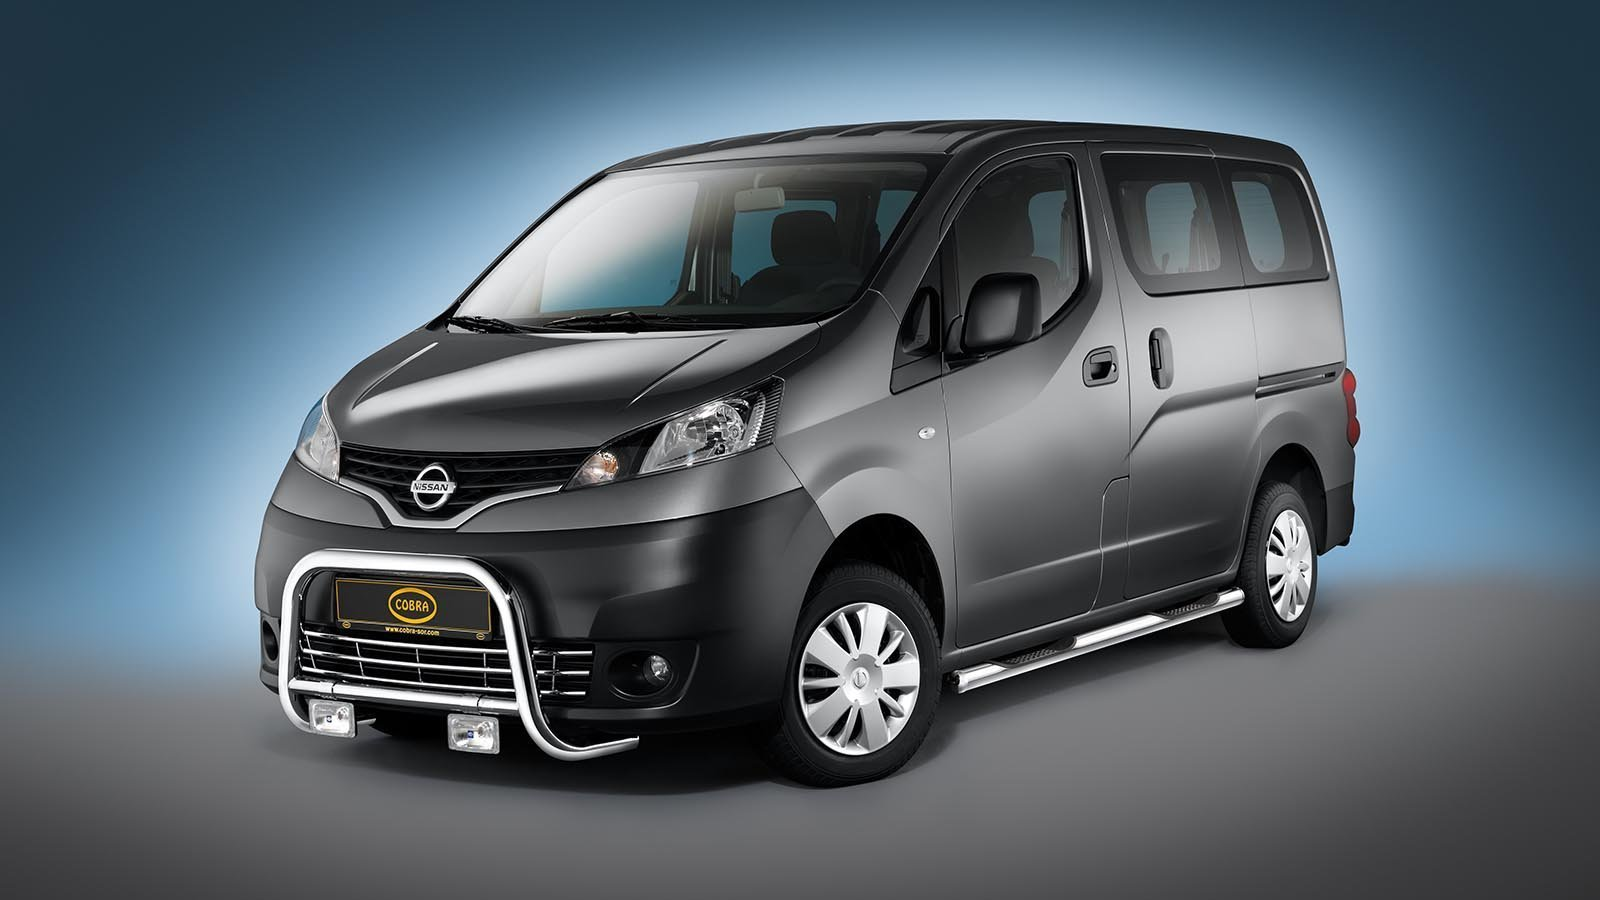 nissan nv200 eu front guard tuning parts for vans km parts. Black Bedroom Furniture Sets. Home Design Ideas